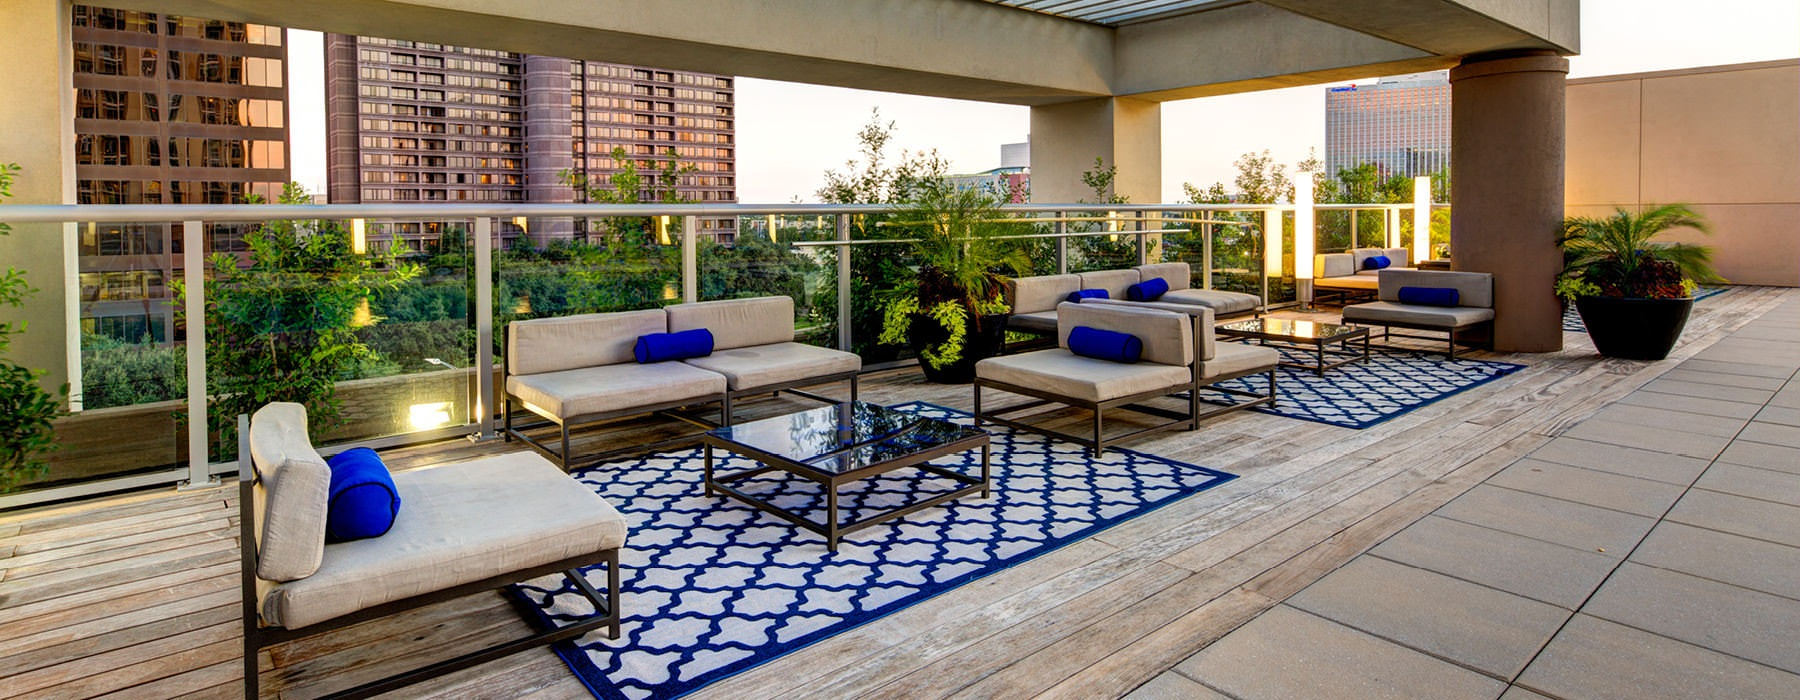 comfortable seating areas on rooftop lounge